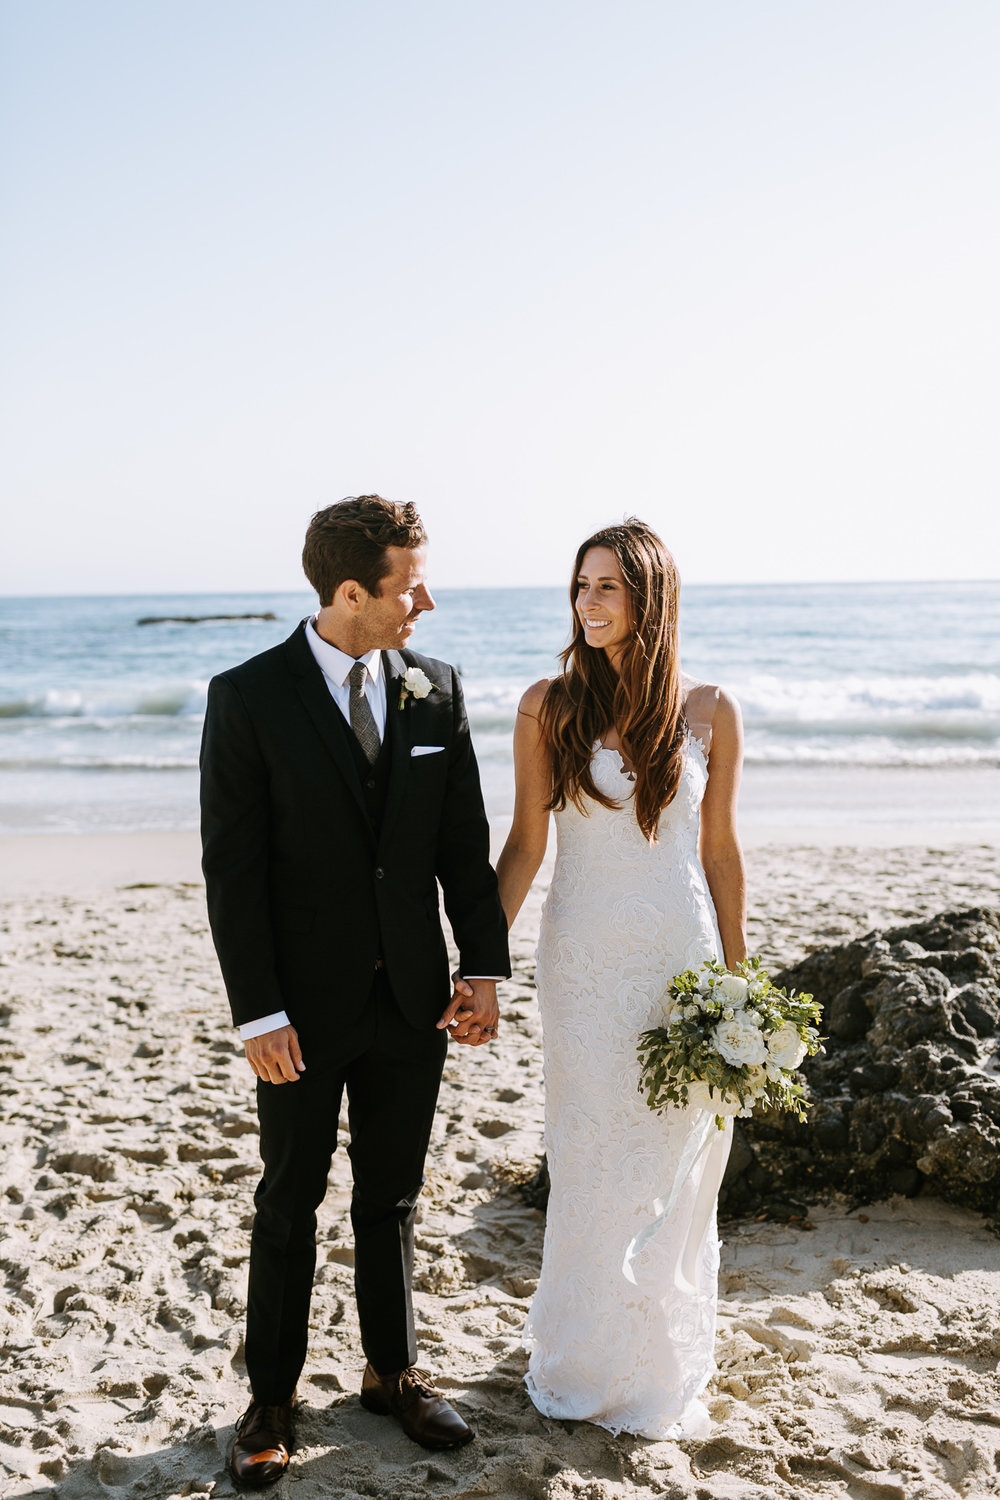 LagunaBeach-WeddingPhotographer-43.jpg